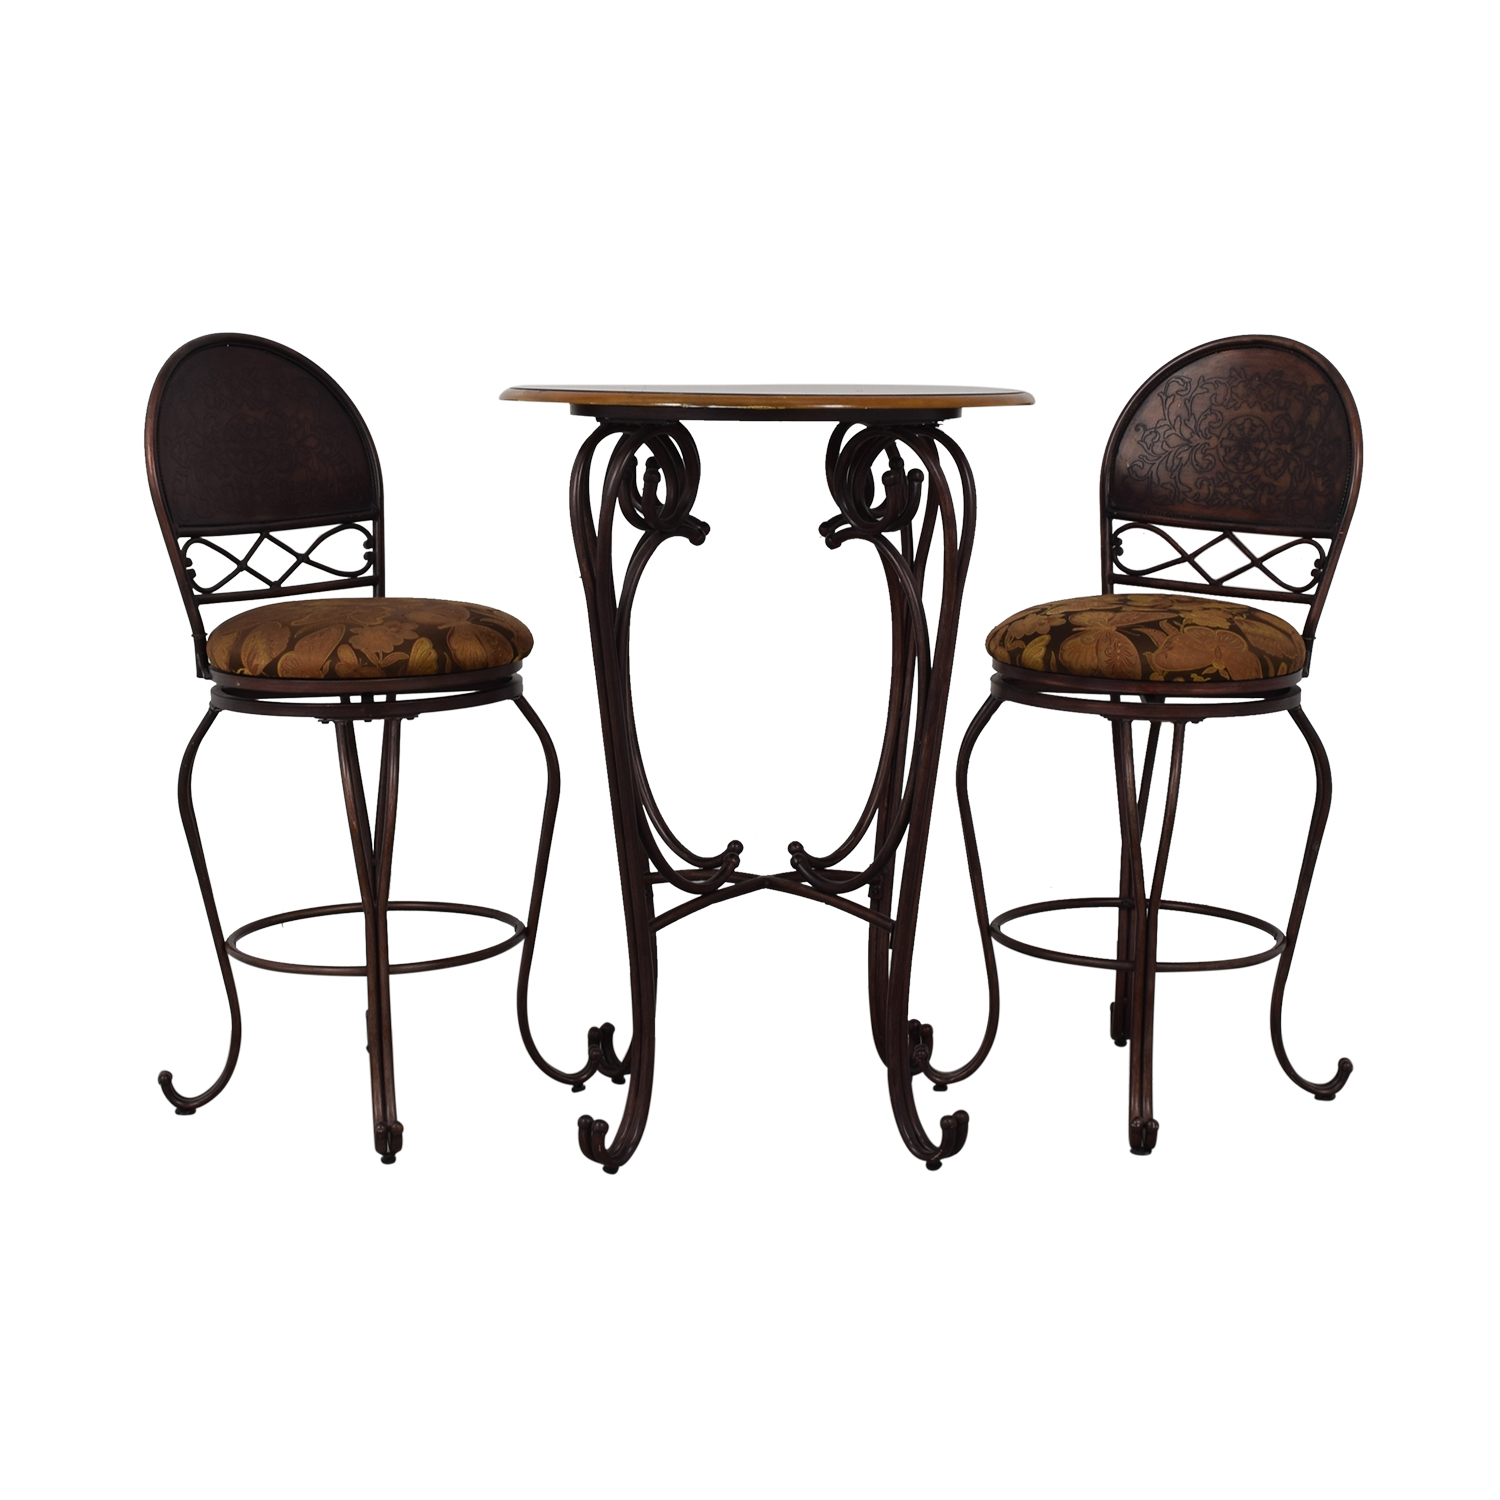 Wood and Metal Bistro Pub Table and Stools used